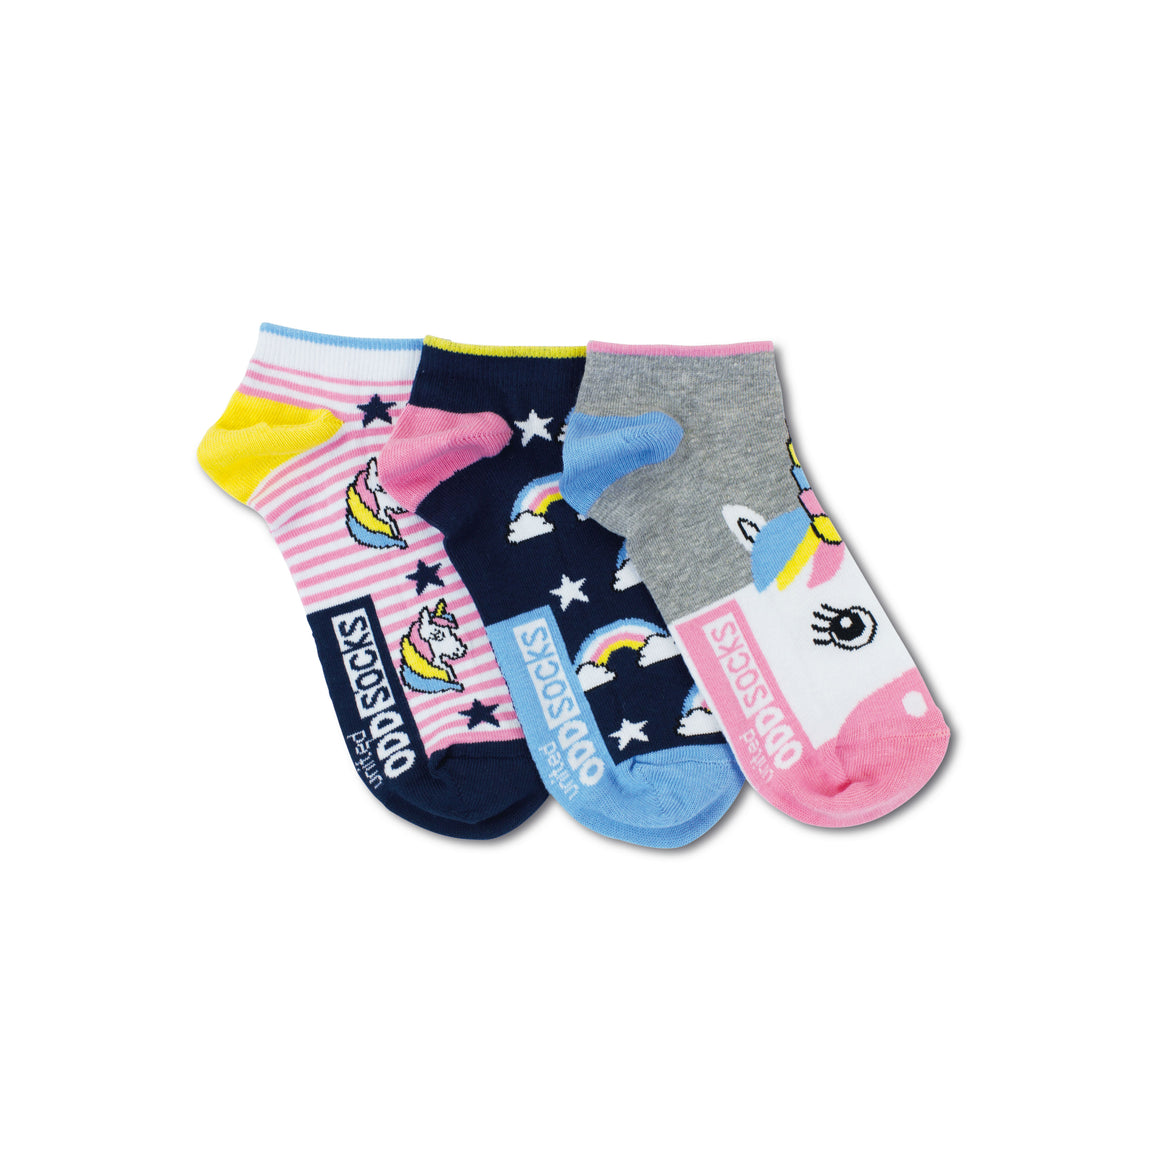 Odd Socks Unicorn Ladies Liner Socks 3 Pack